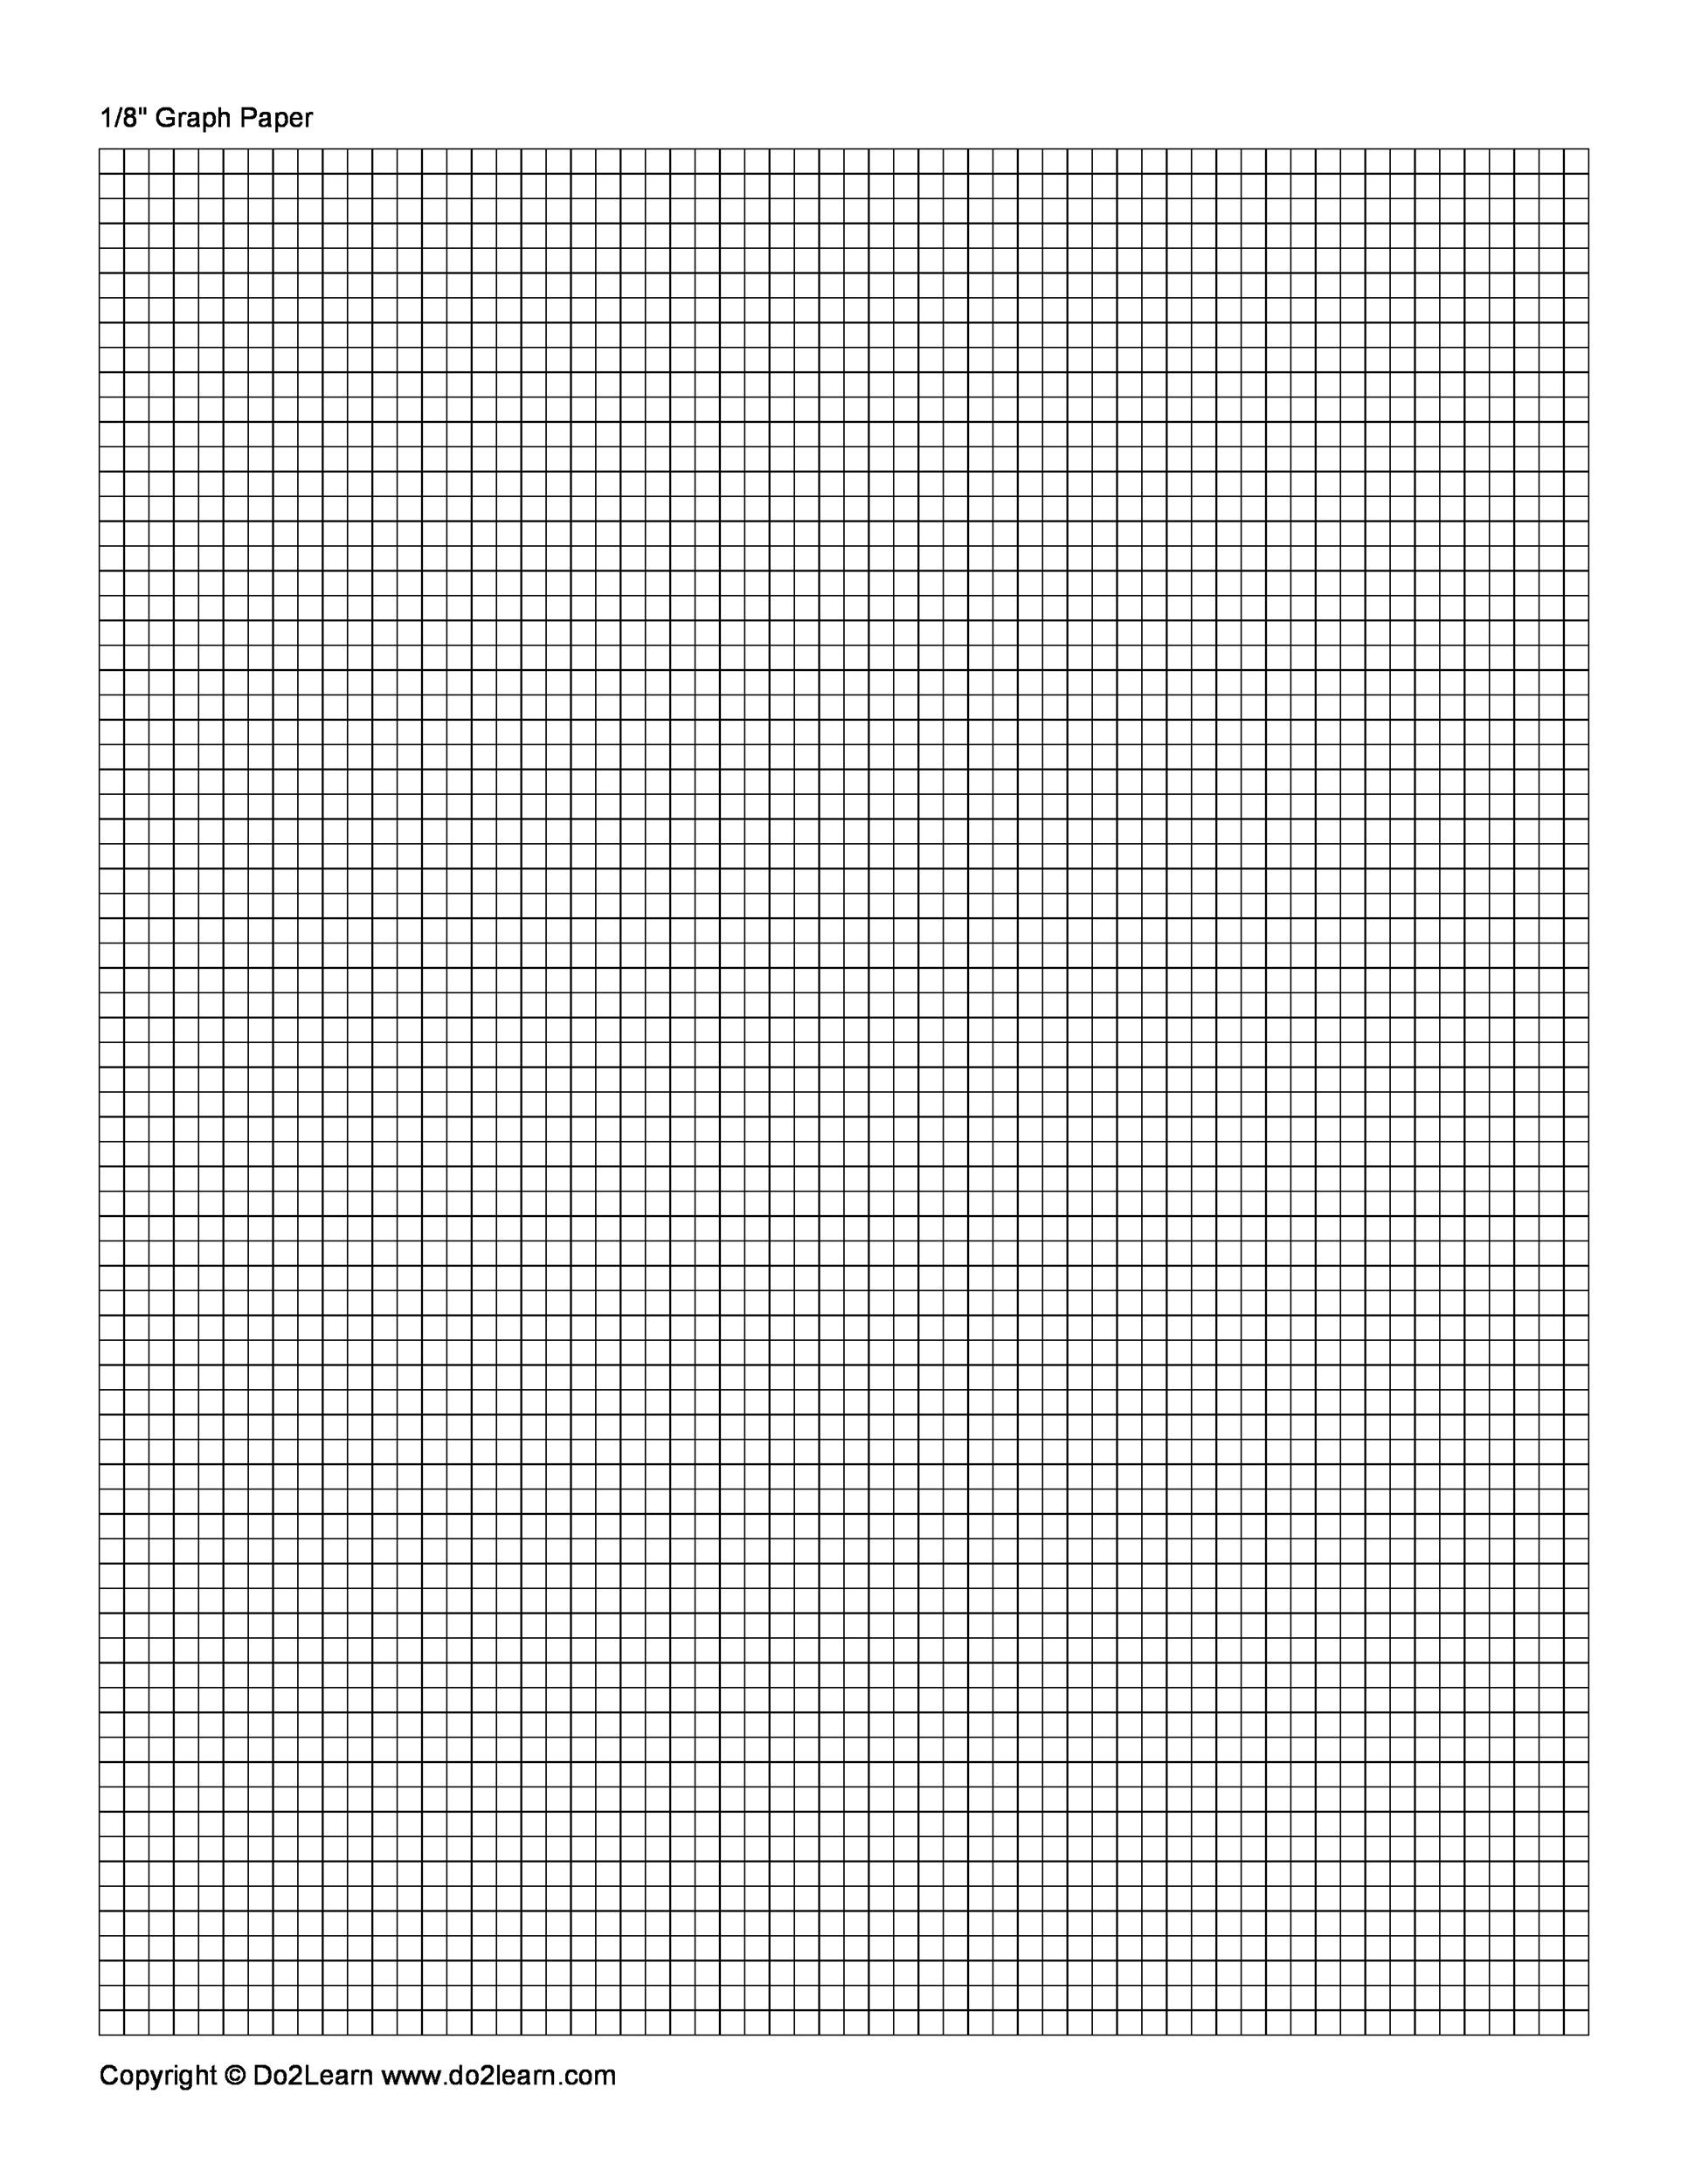 Printable Graph Paper Template 01  Lined Paper Template For Word